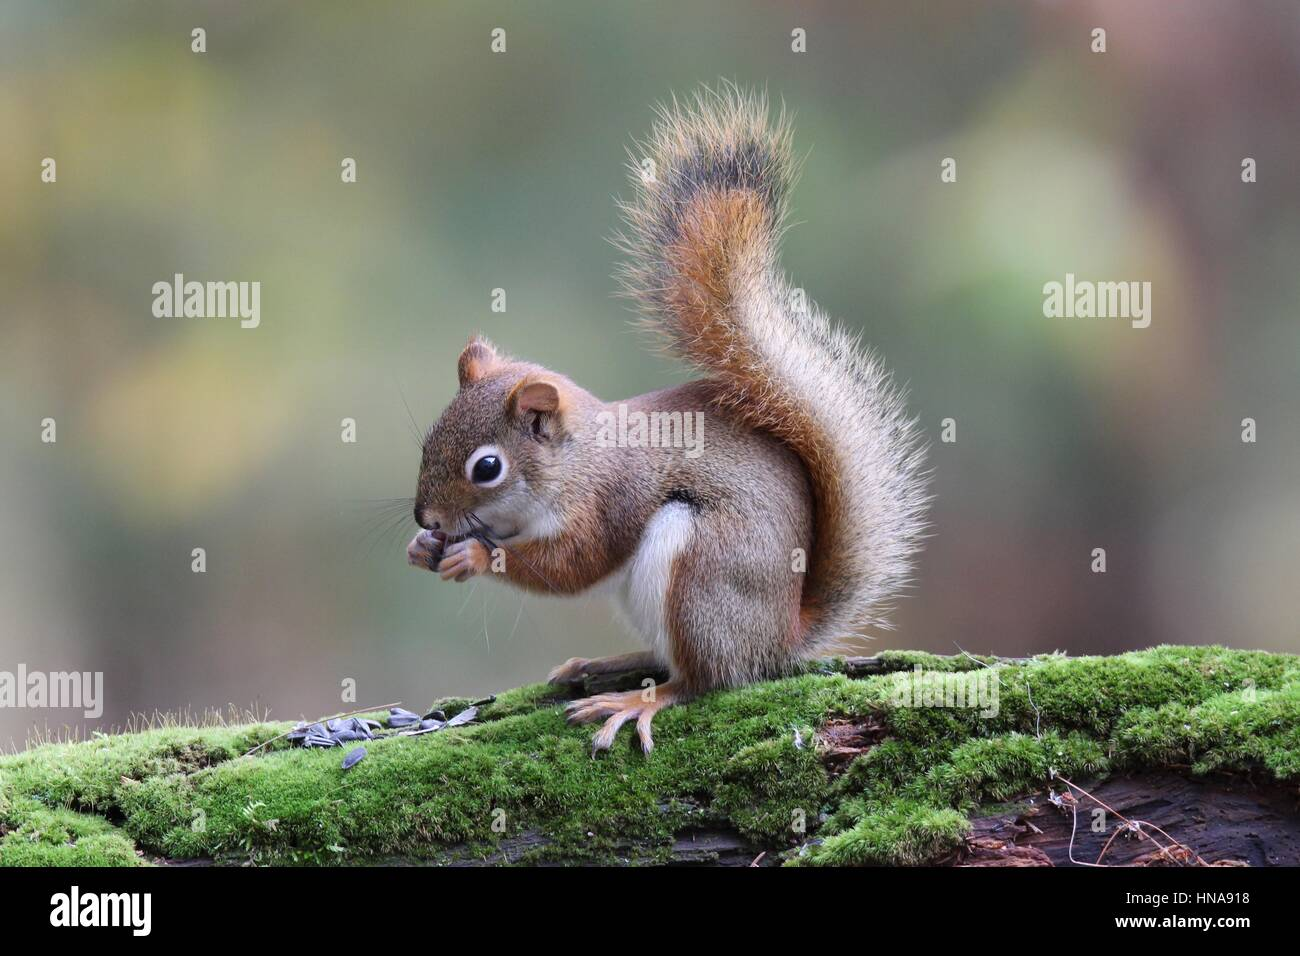 An American red squirrel eats food from it's paws in Fall - Stock Image